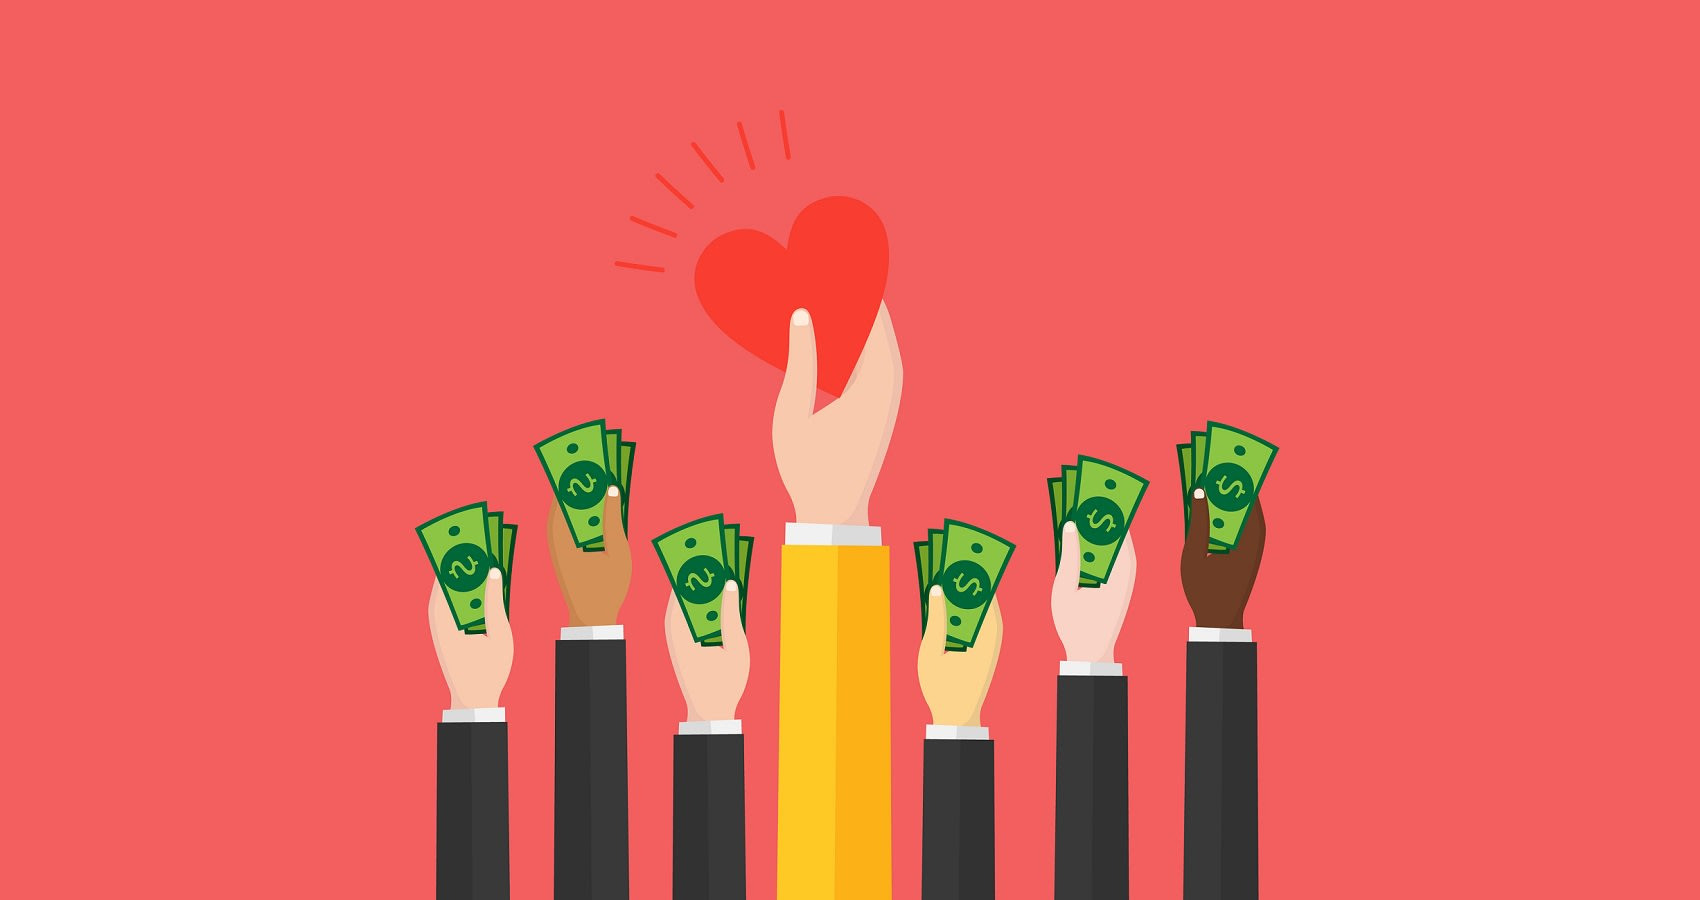 Illustration of hands holding cash, and another holding a heart, representing financial relief.